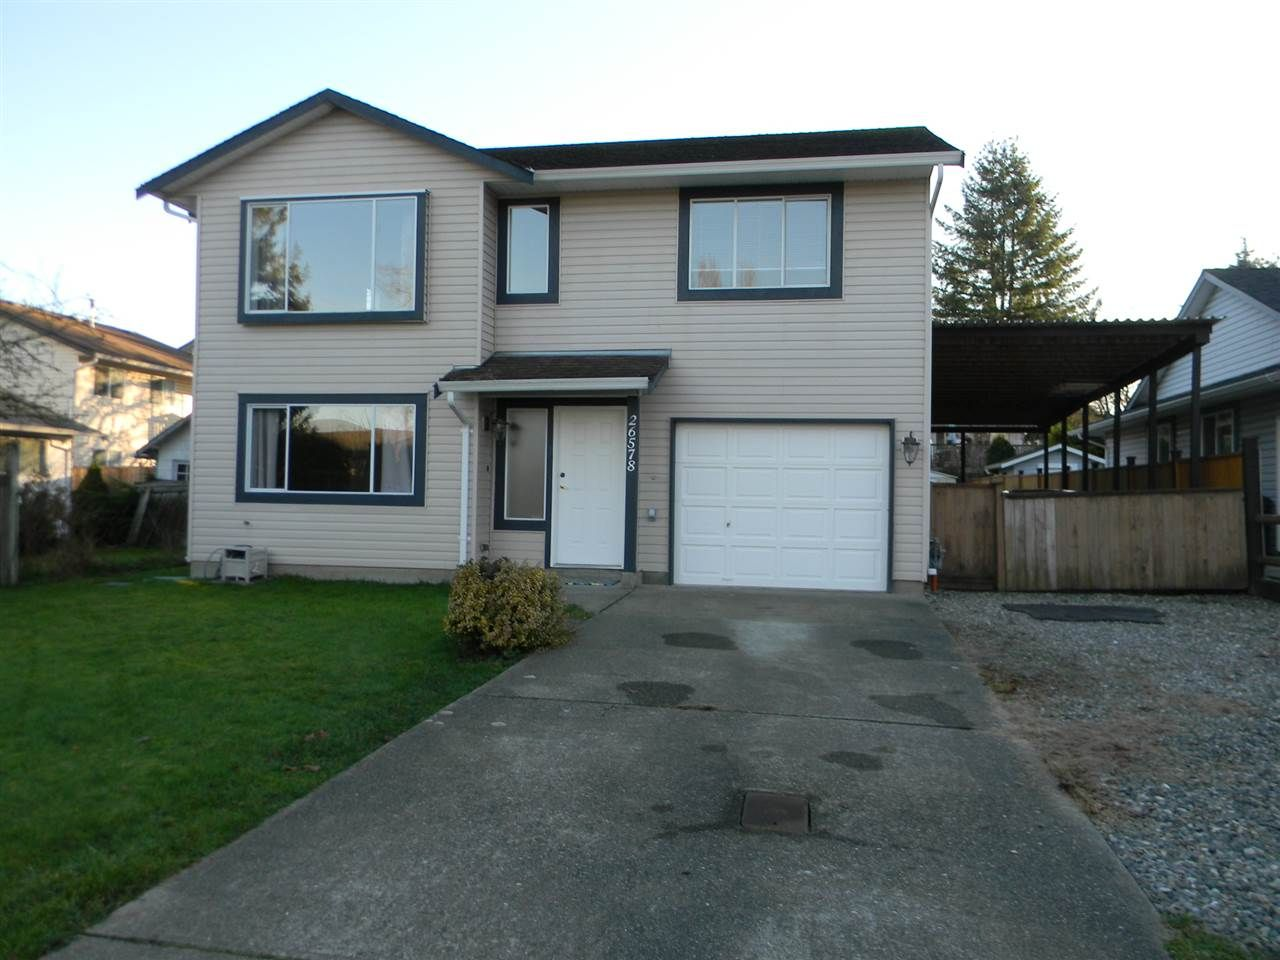 Main Photo: 26578 32A AVENUE in : Aldergrove Langley House for sale : MLS®# R2421432